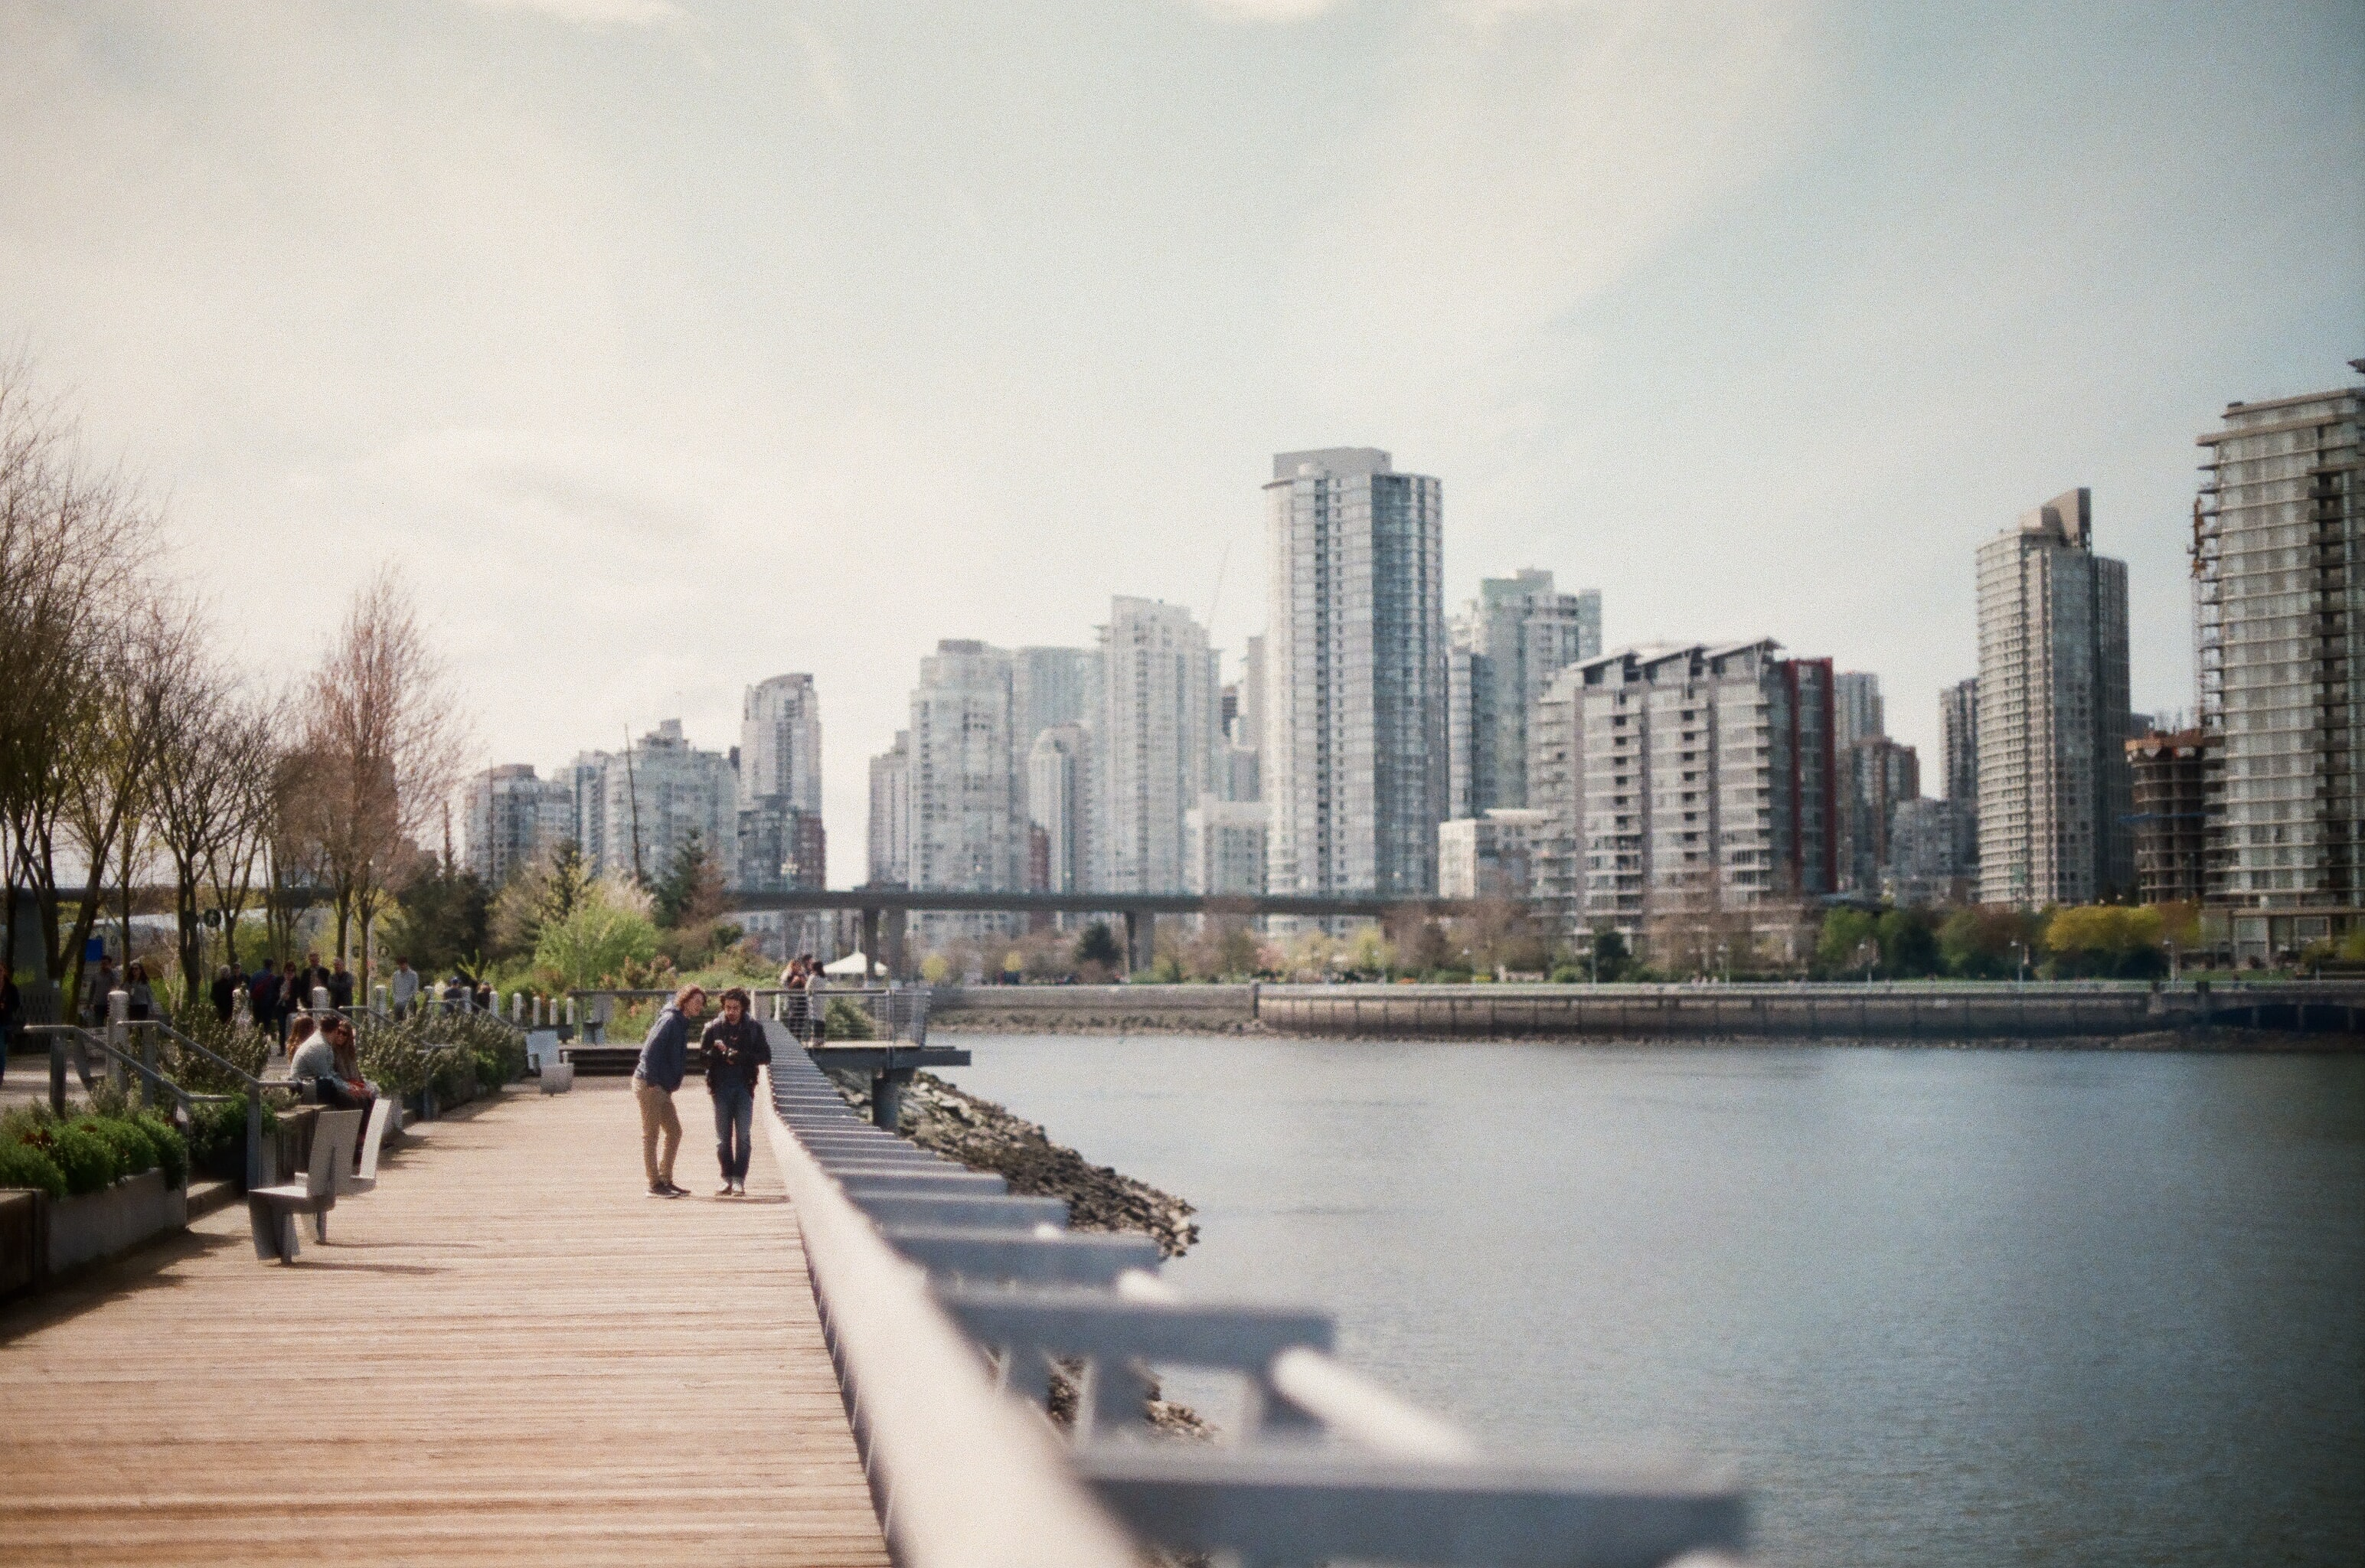 3 Day Trips to Enjoy Spring in Vancouver Safely This Year